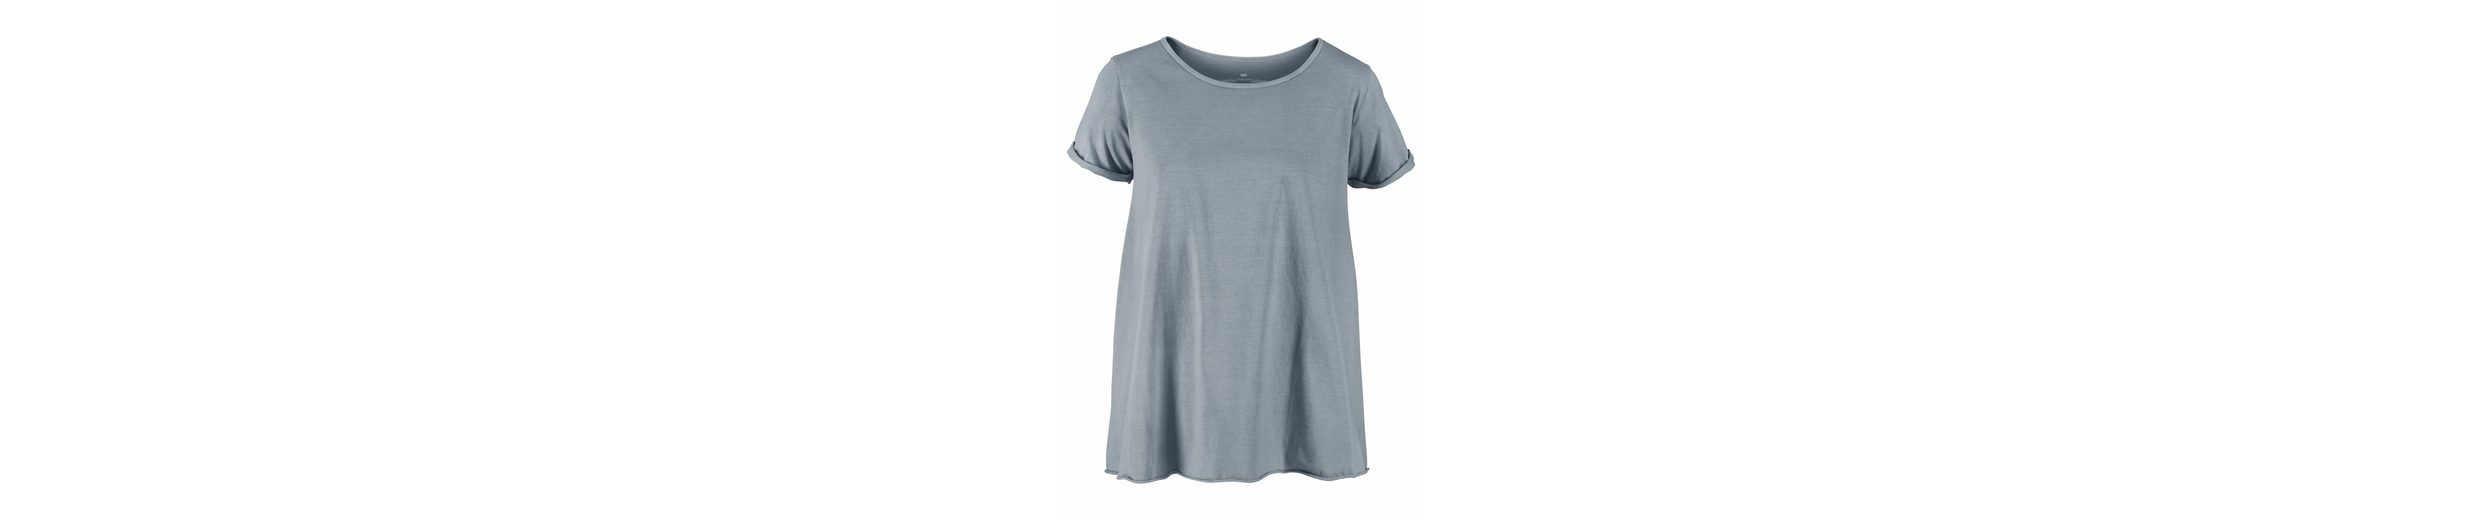 Cross Jeans® T-Shirt, in A-Linie